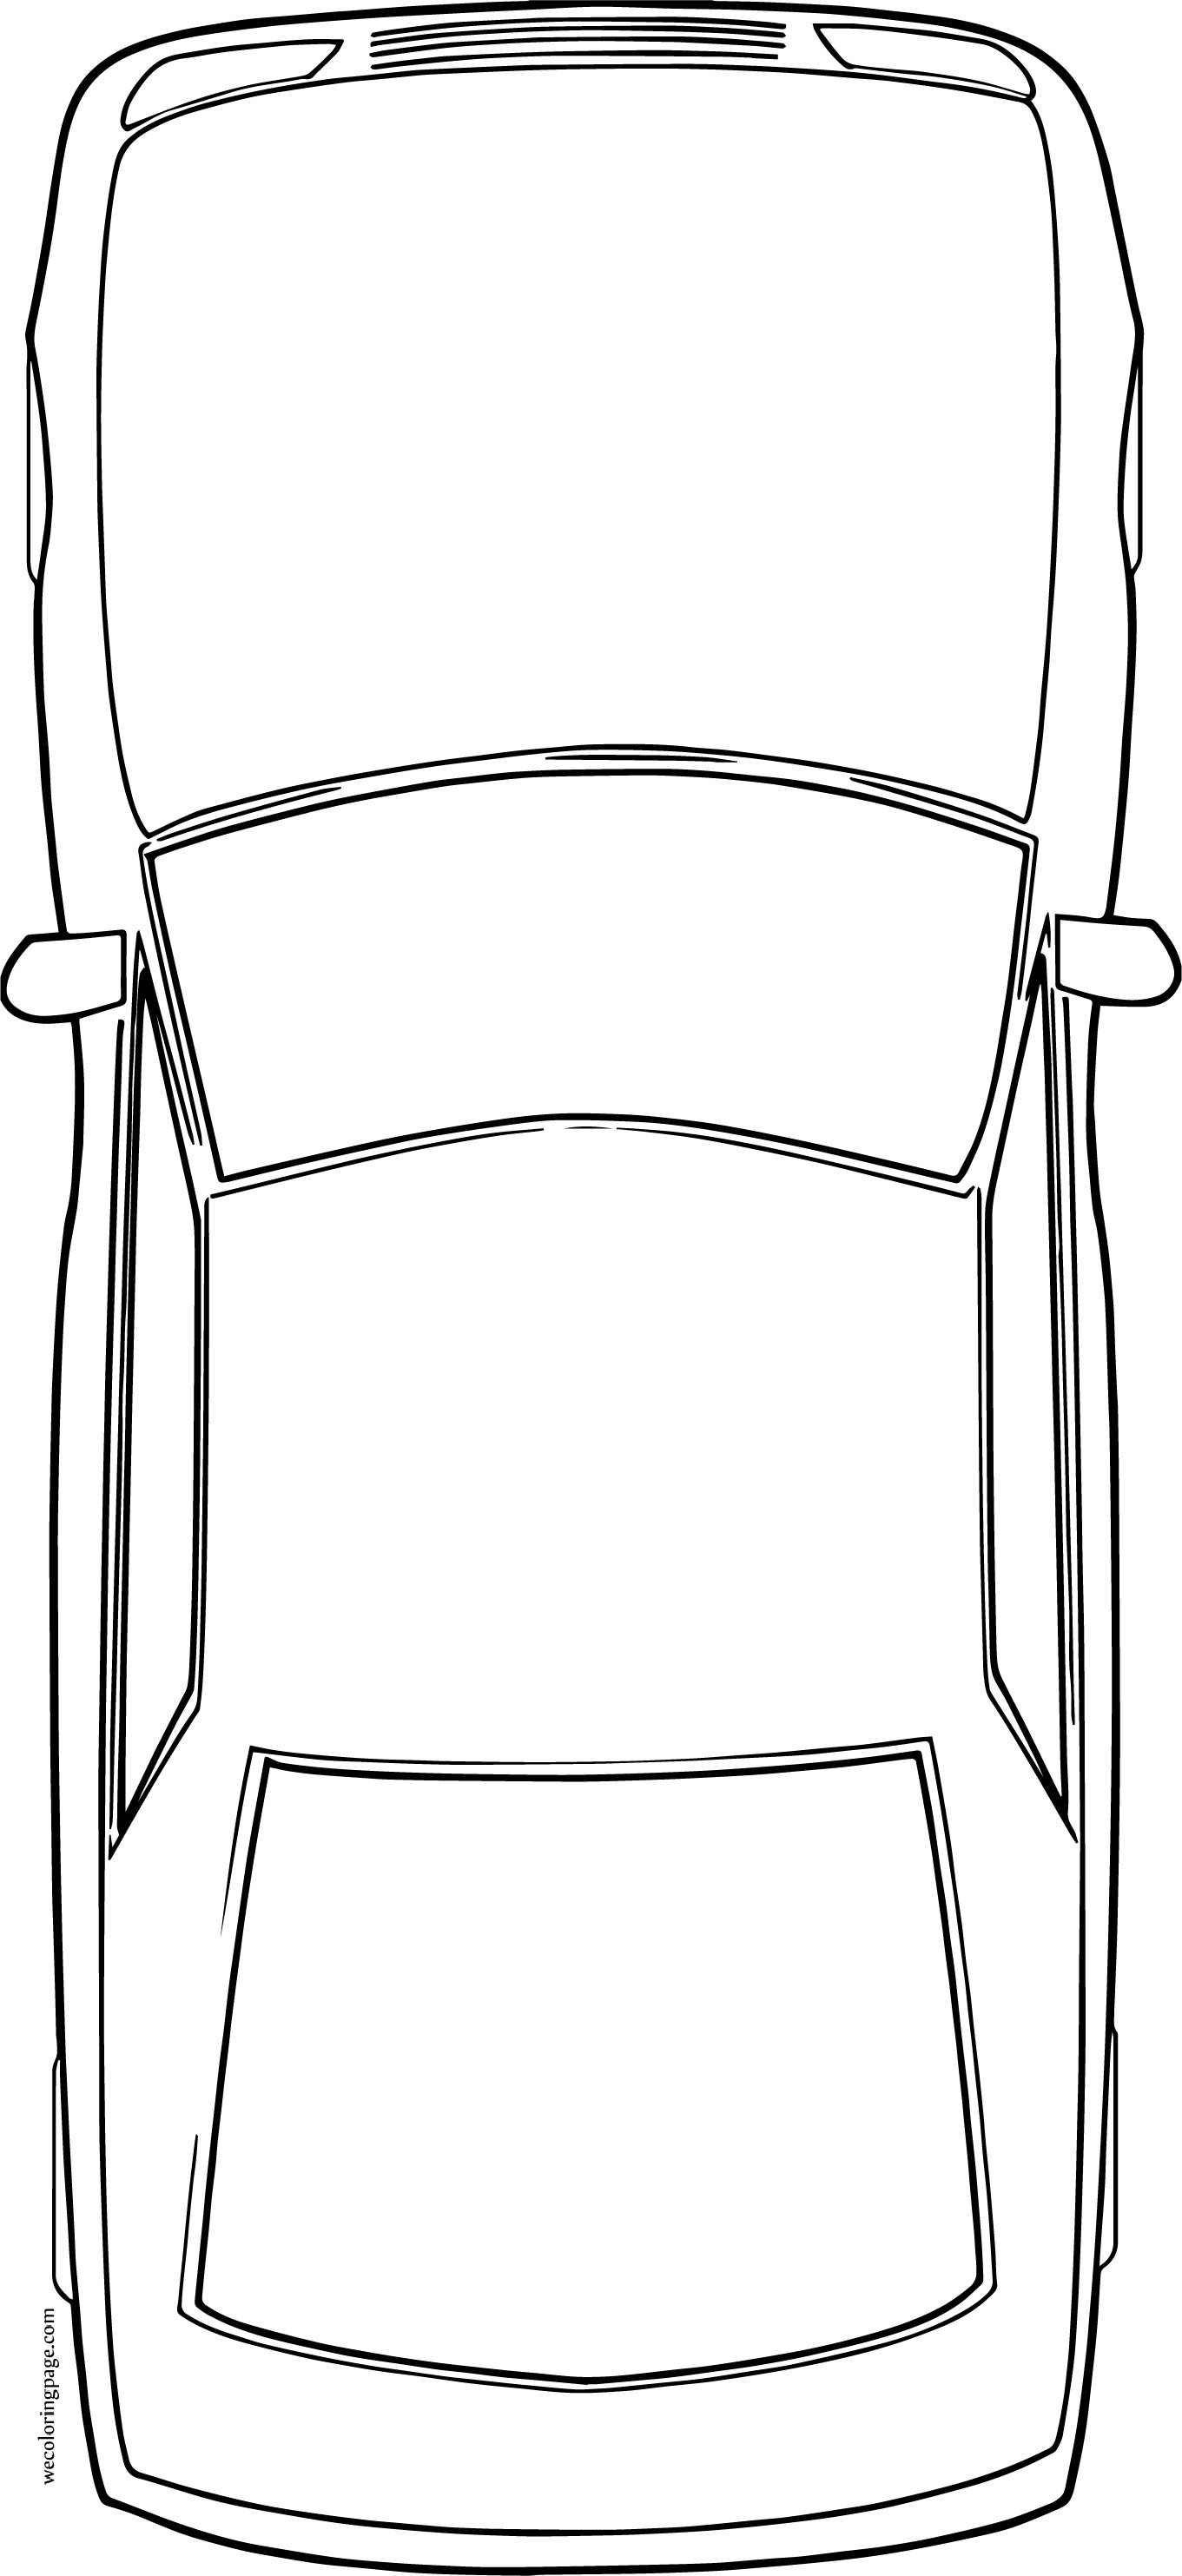 There Car Coloring Page